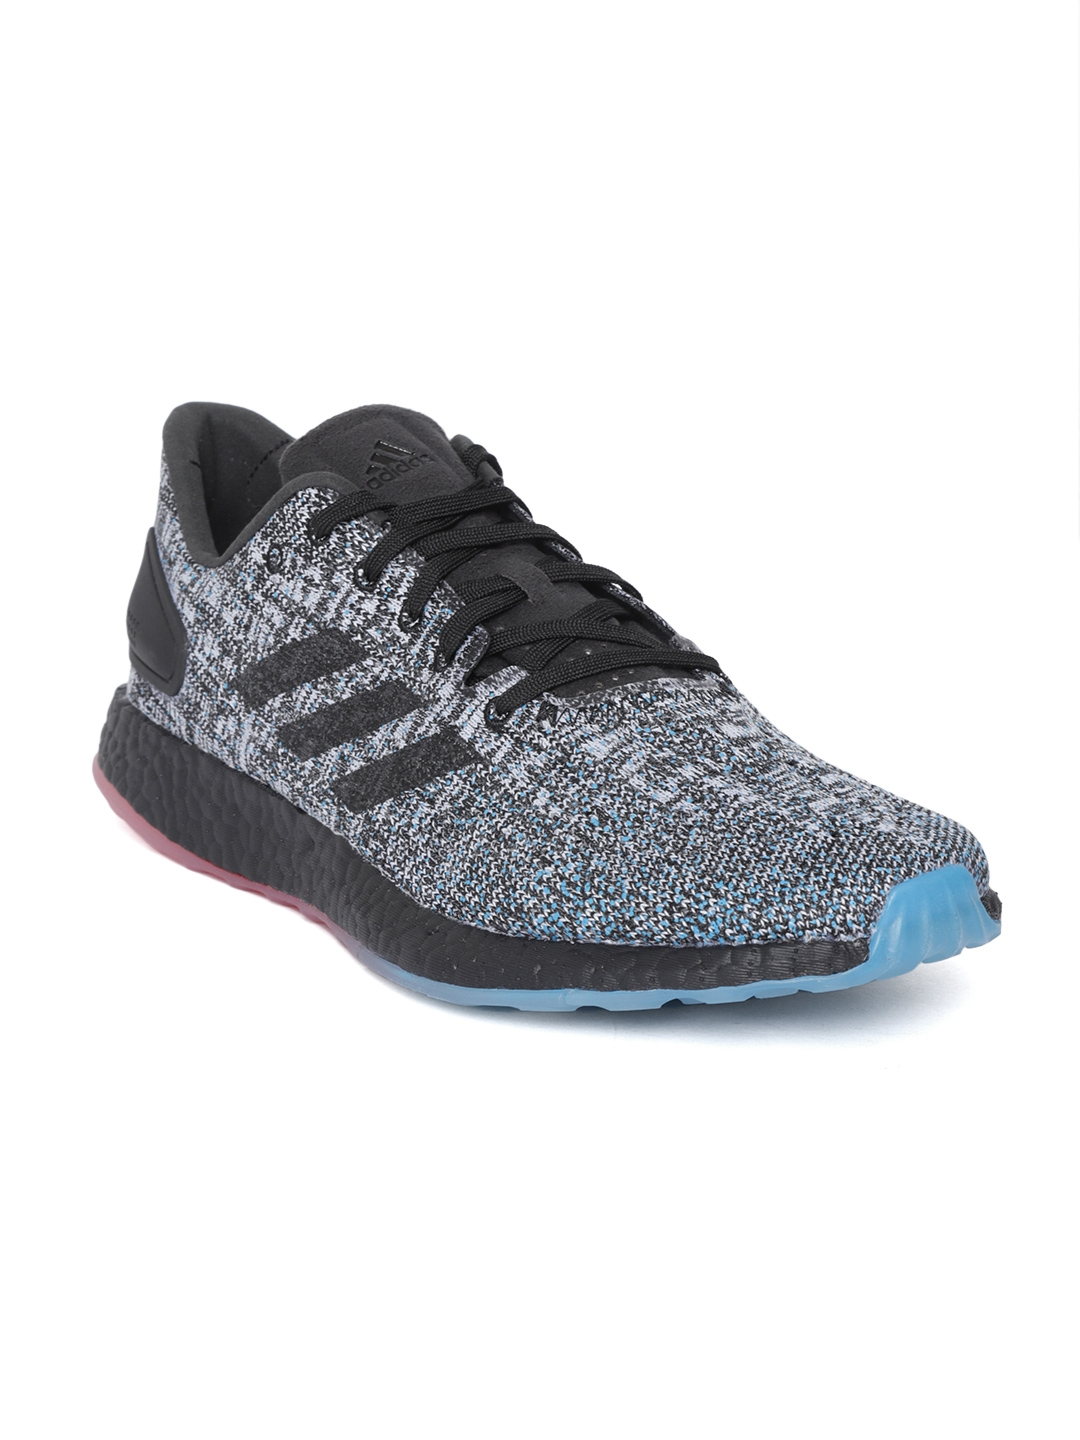 timeless design b5b05 780fa ADIDAS Men Black & Grey Pureboost DPR LTD Running Shoes